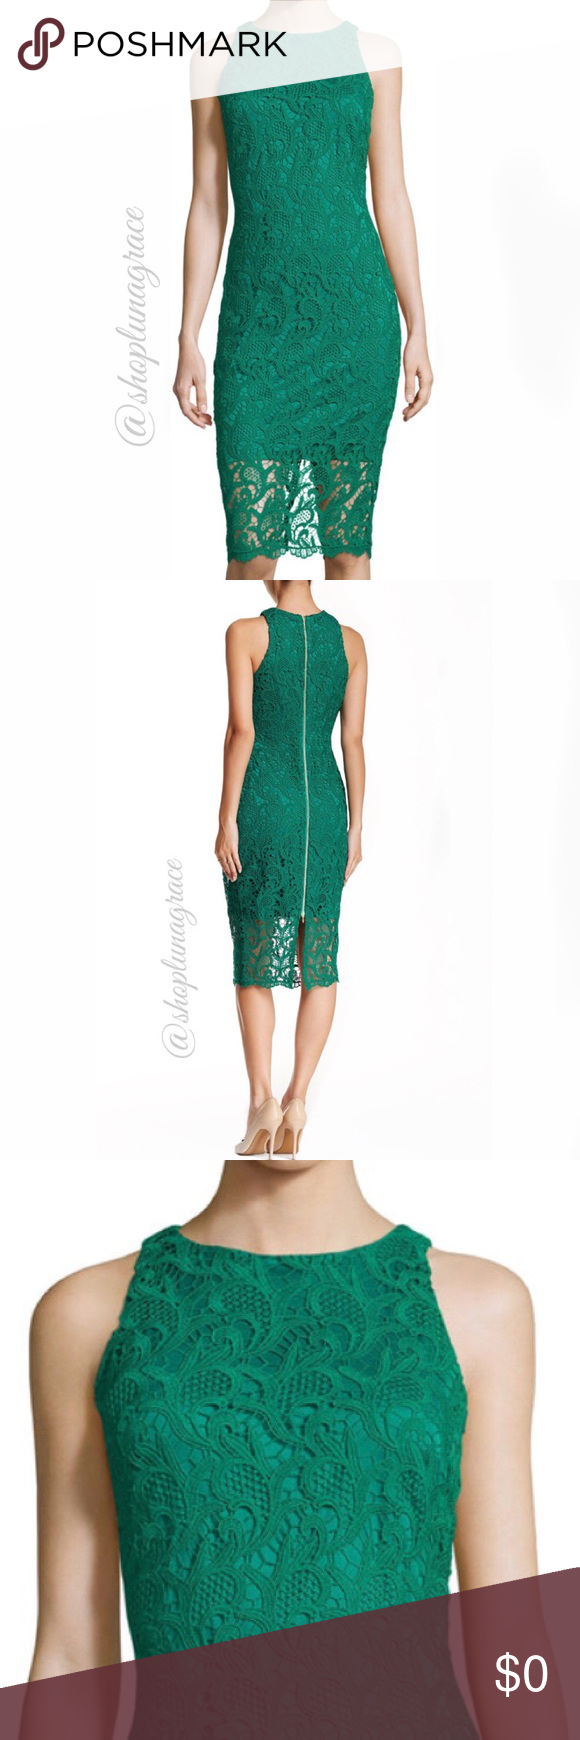 Green dress with lace overlay  Just In Alexa Admor Lace Overlay Dress NWT  My Posh Picks